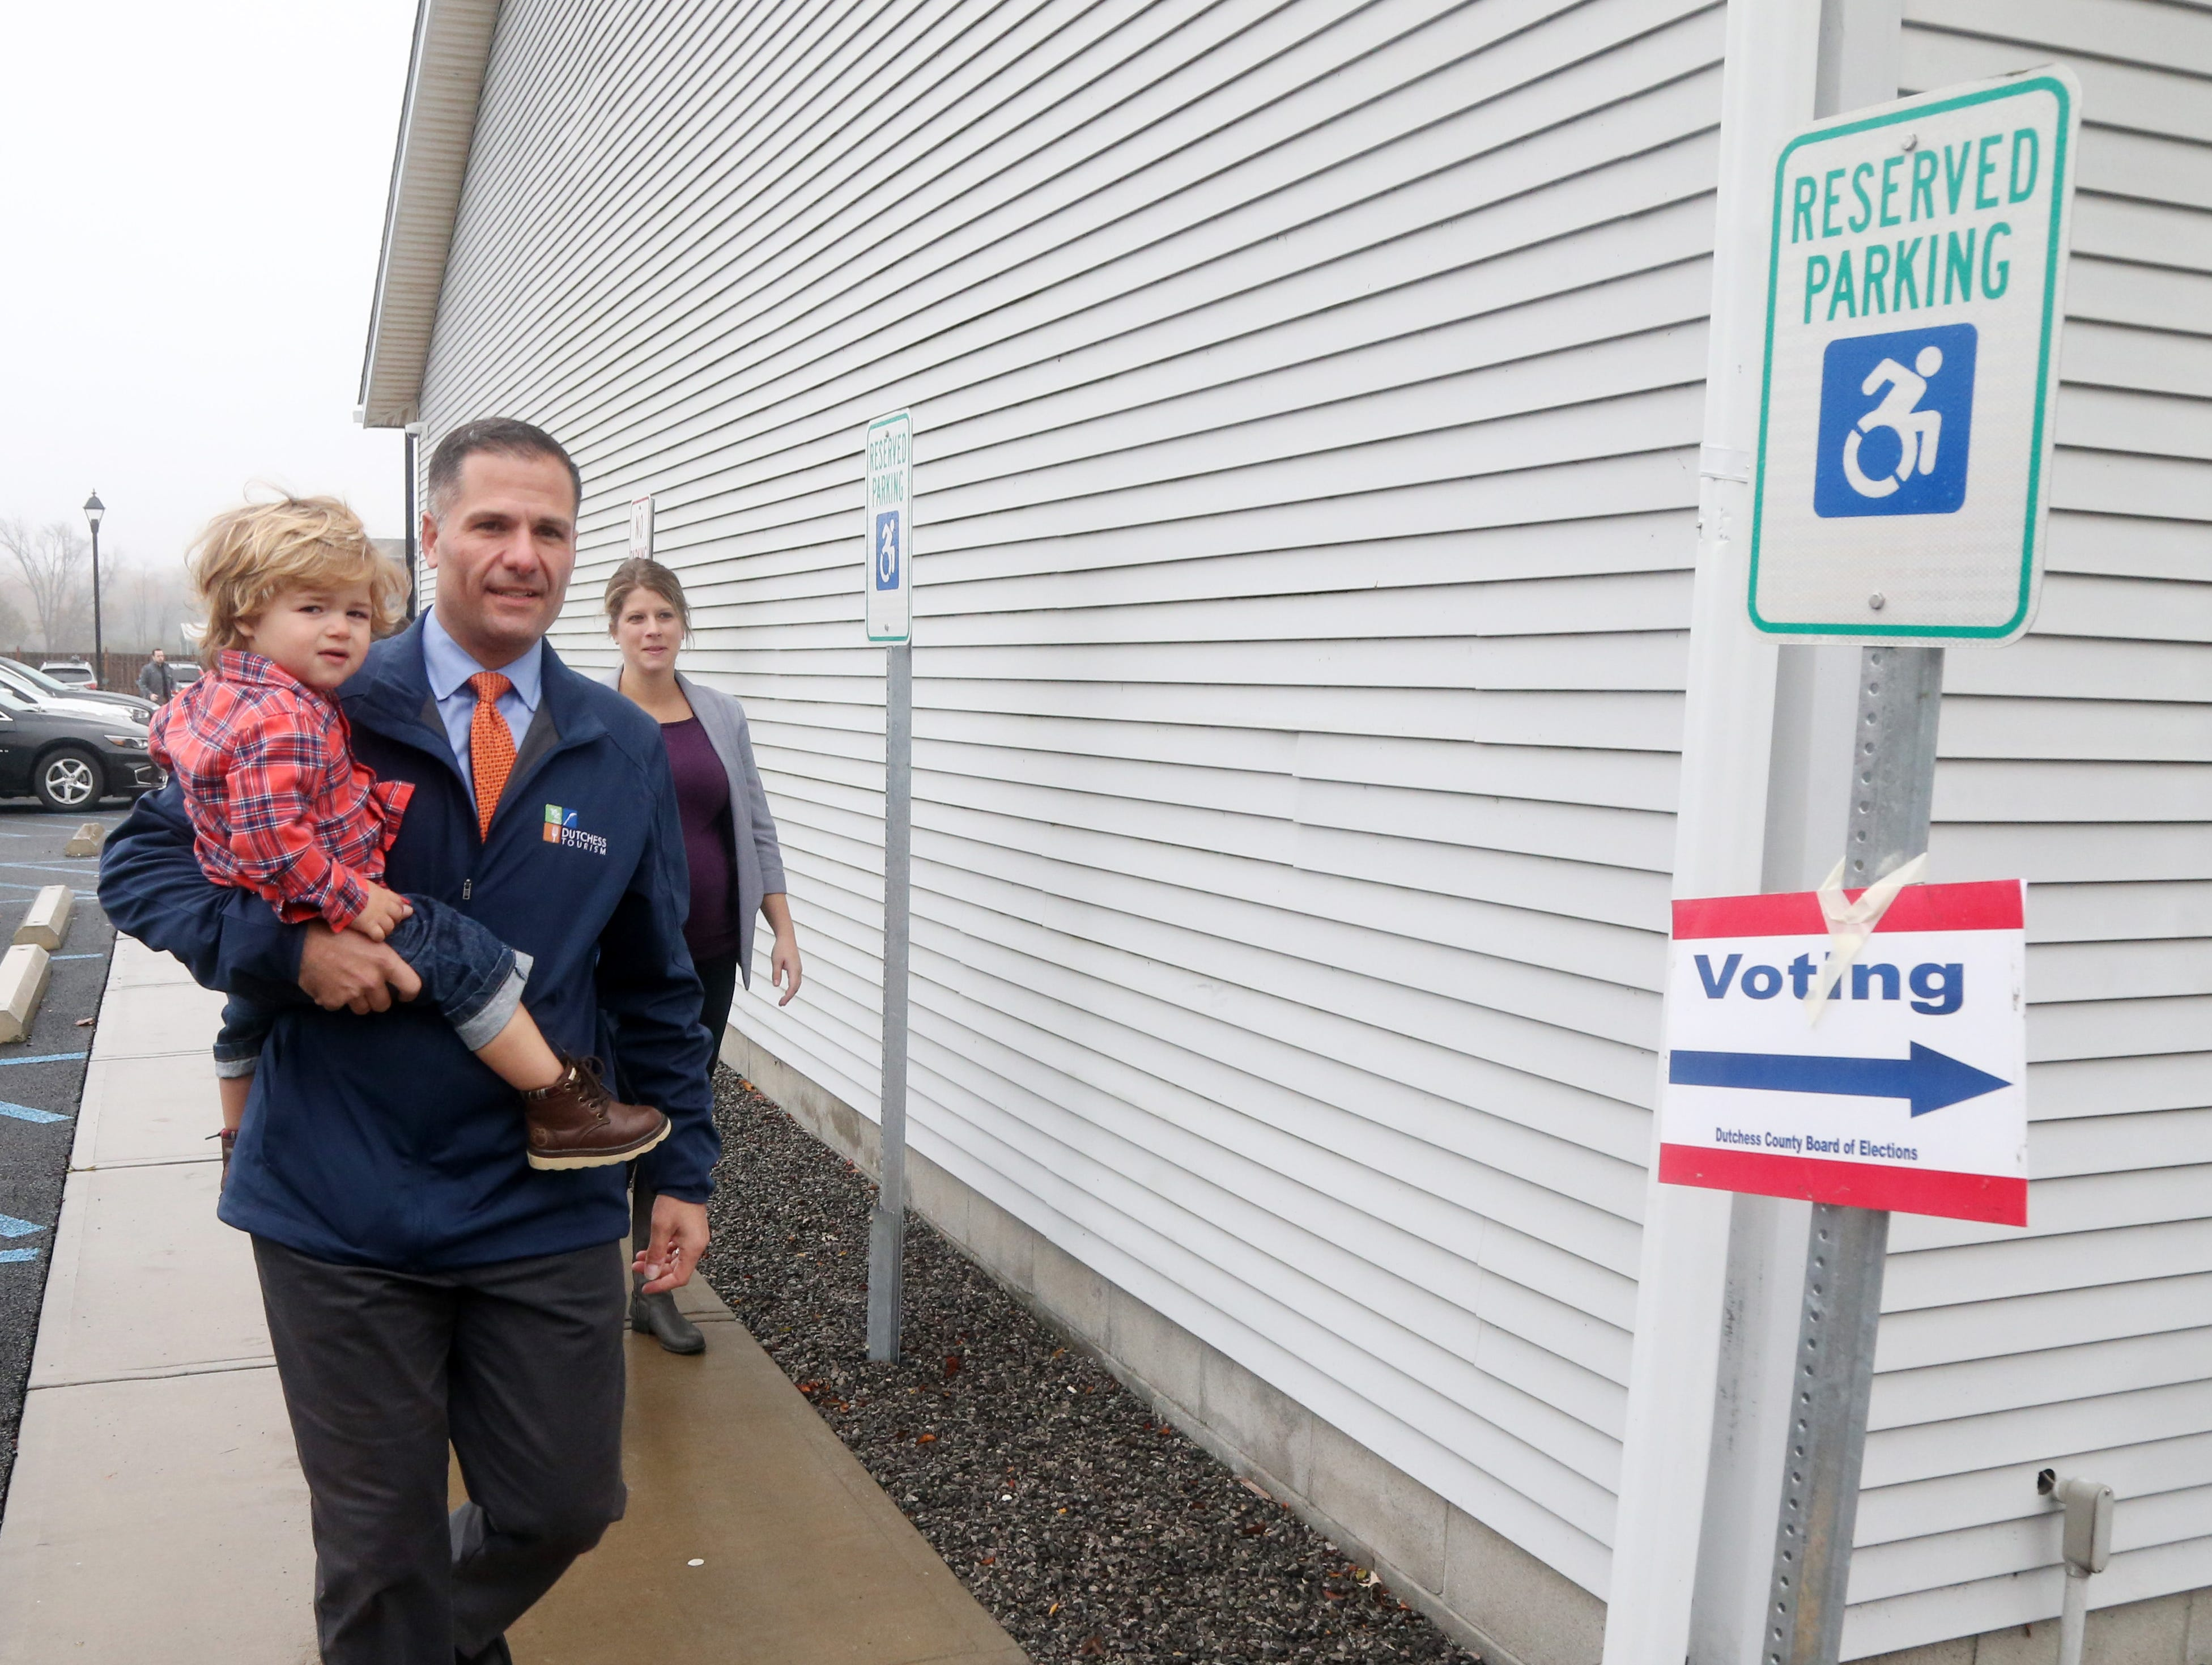 Republican Gubernatorial candidate Marc Molinaro walks to Red Hook Town Hall to cast his ballot on November 6, 2018. Molinaro holds his son Elias.